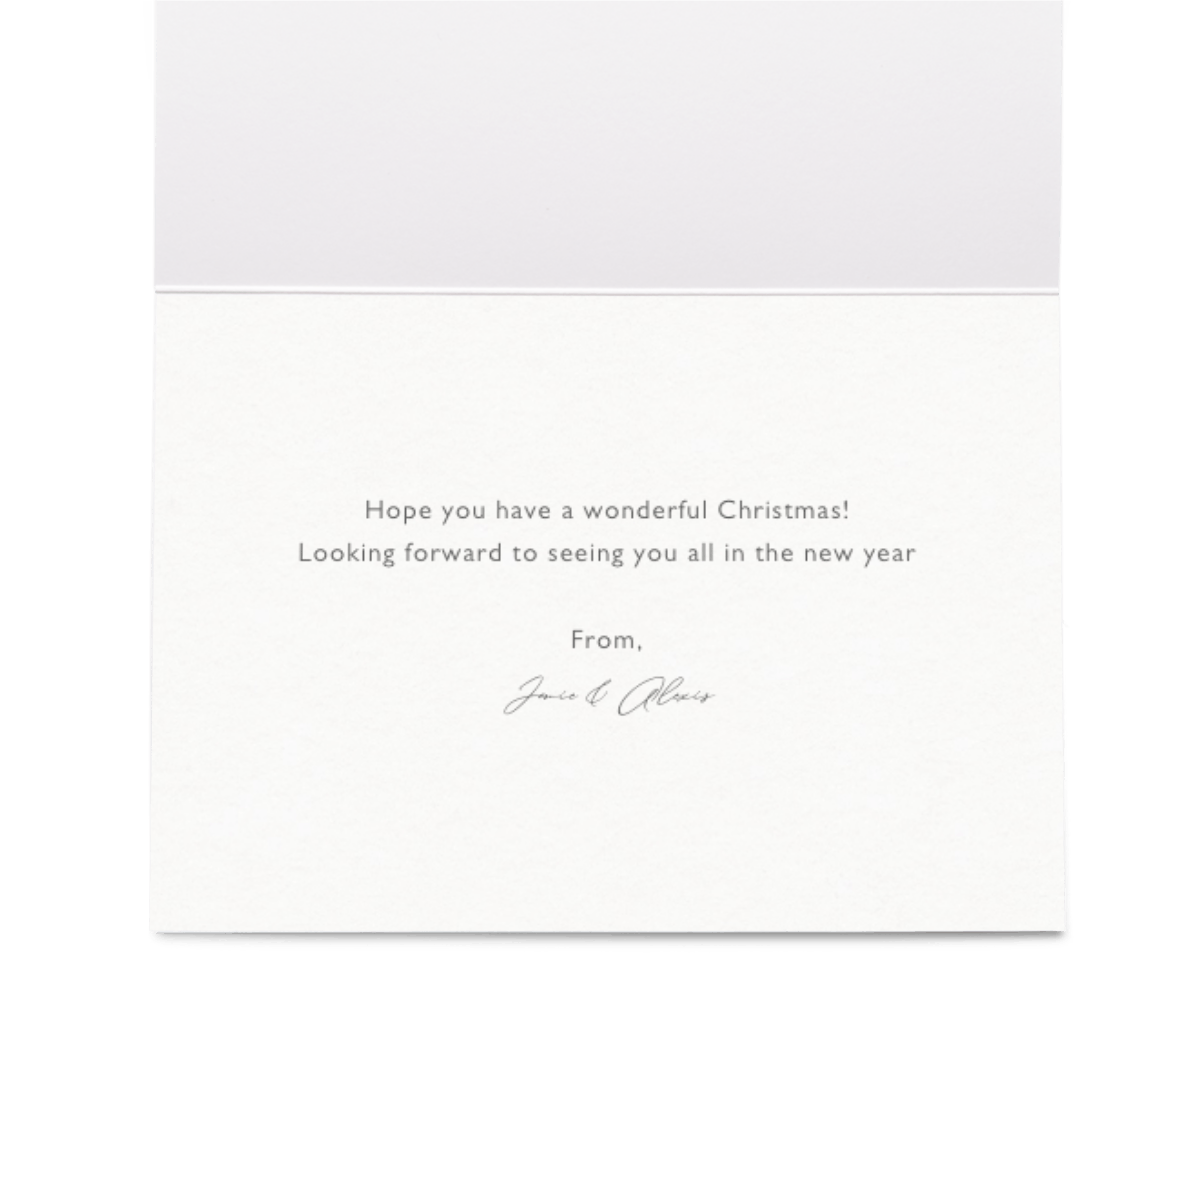 Https%3a%2f%2fwww.papier.com%2fproduct image%2f94973%2f20%2fchristmas botanical 23763 inside 1572355209.png?ixlib=rb 1.1